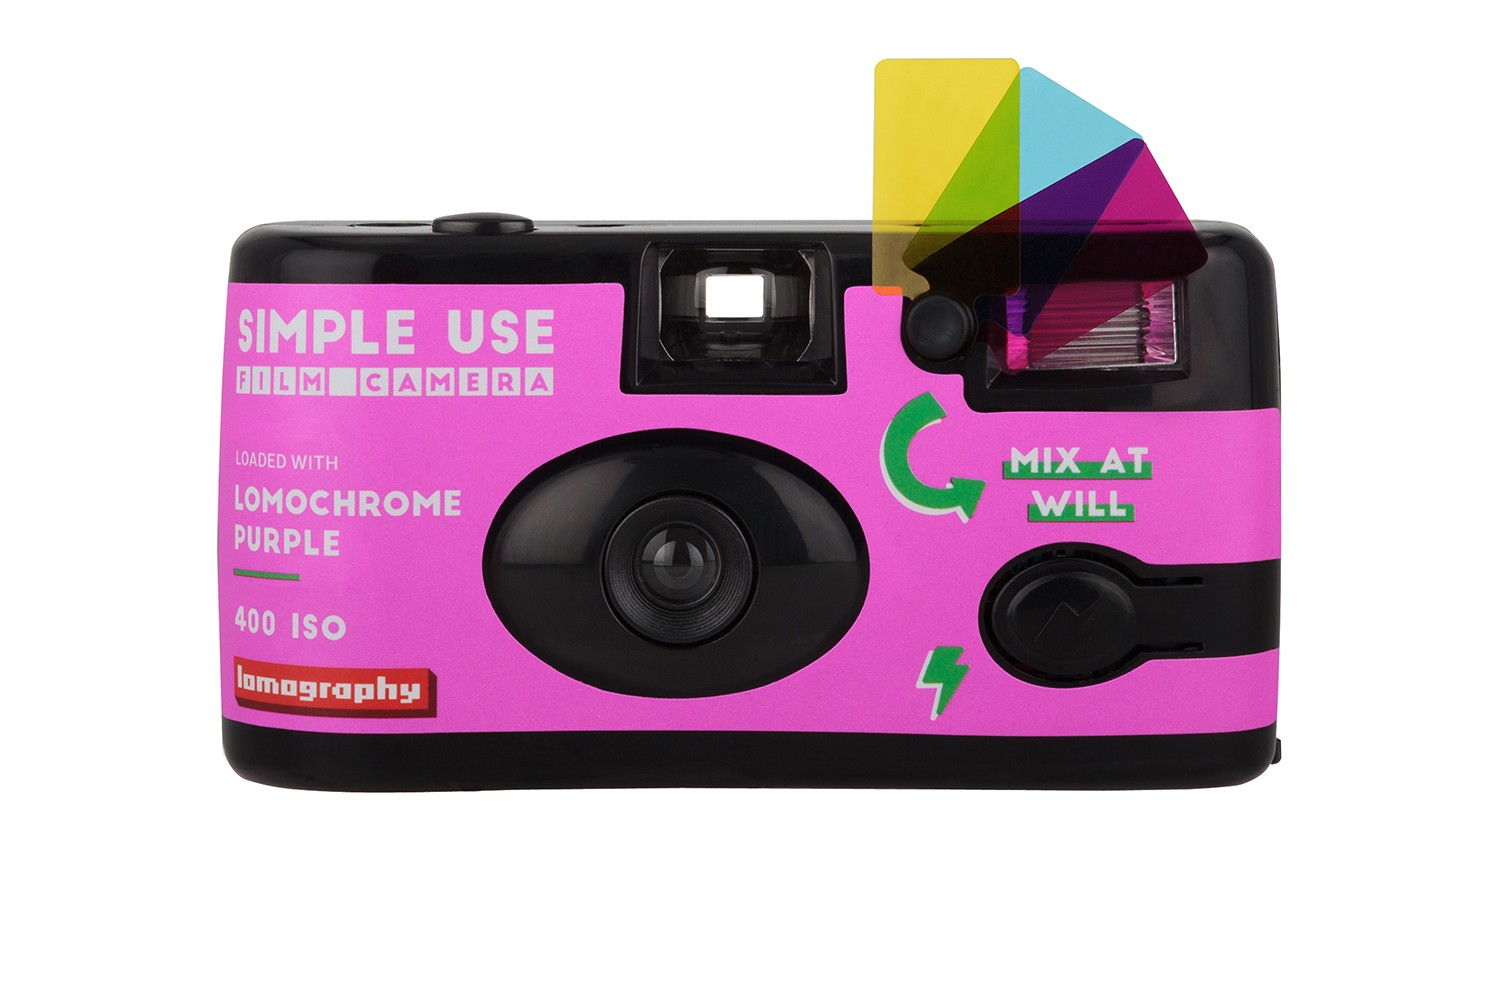 Simple Use Reusable Film Camera Lomochrome Purple 2019 - 36 Exposures